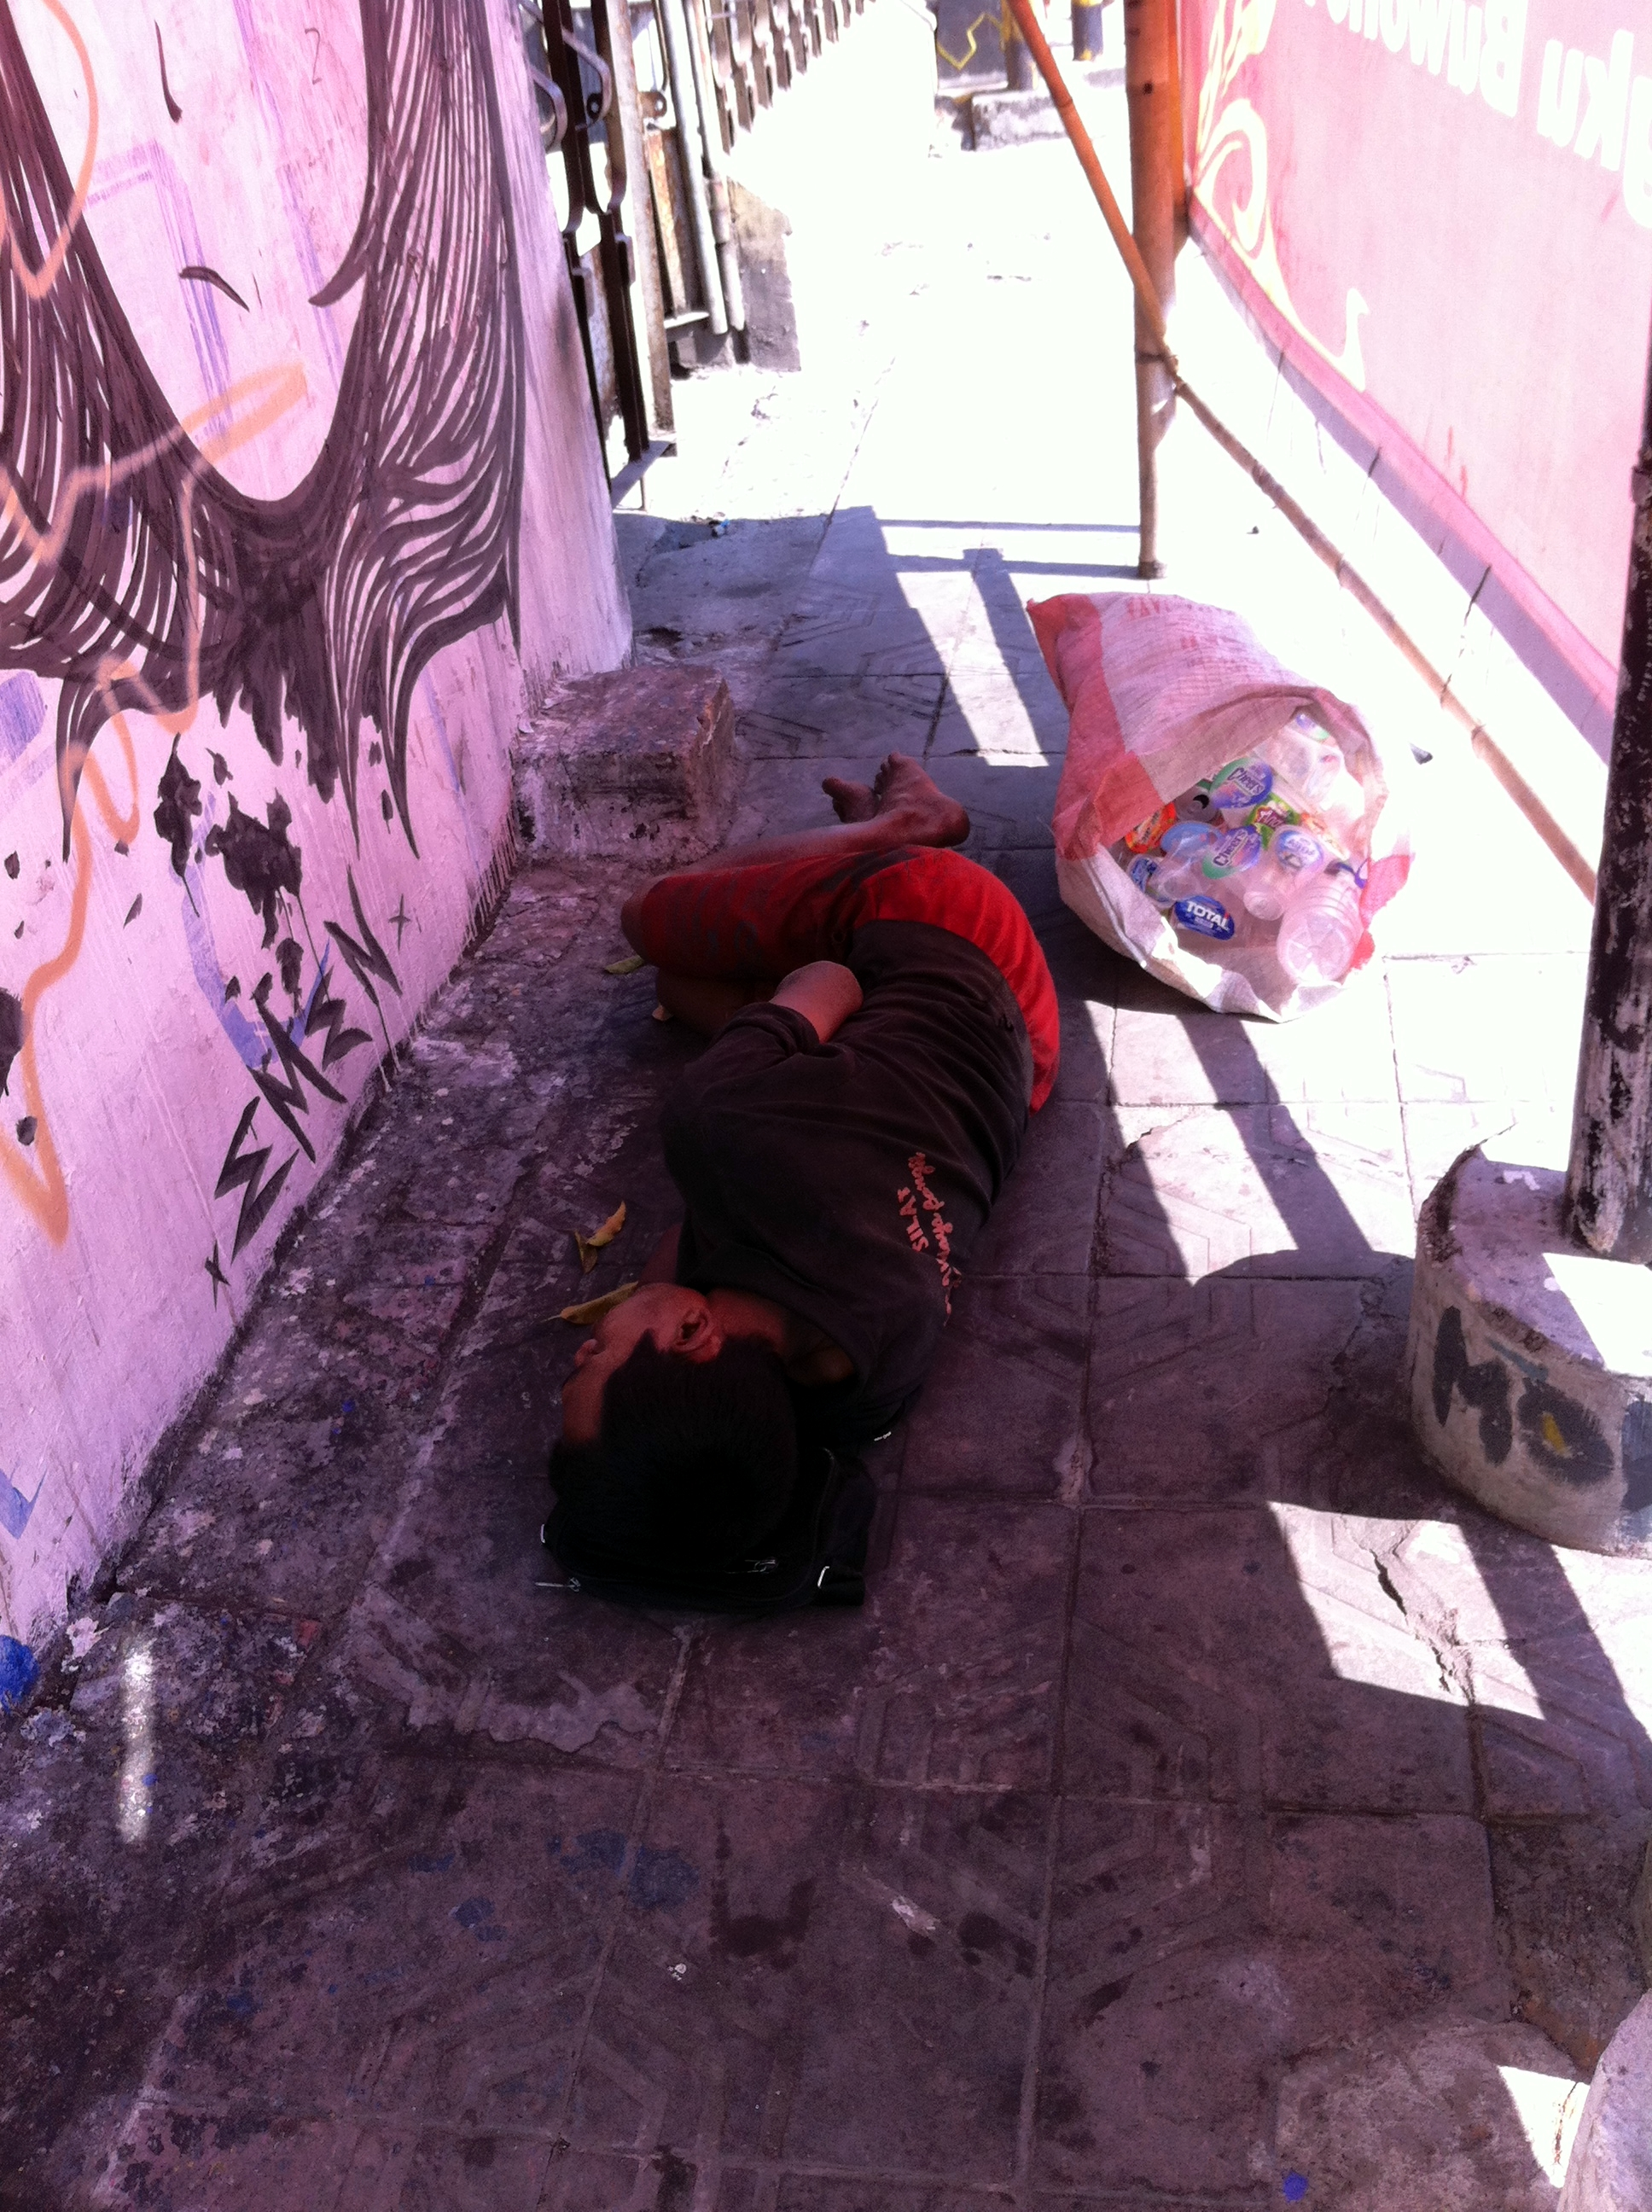 A plastic bottles collector sleeping on the sidewalk